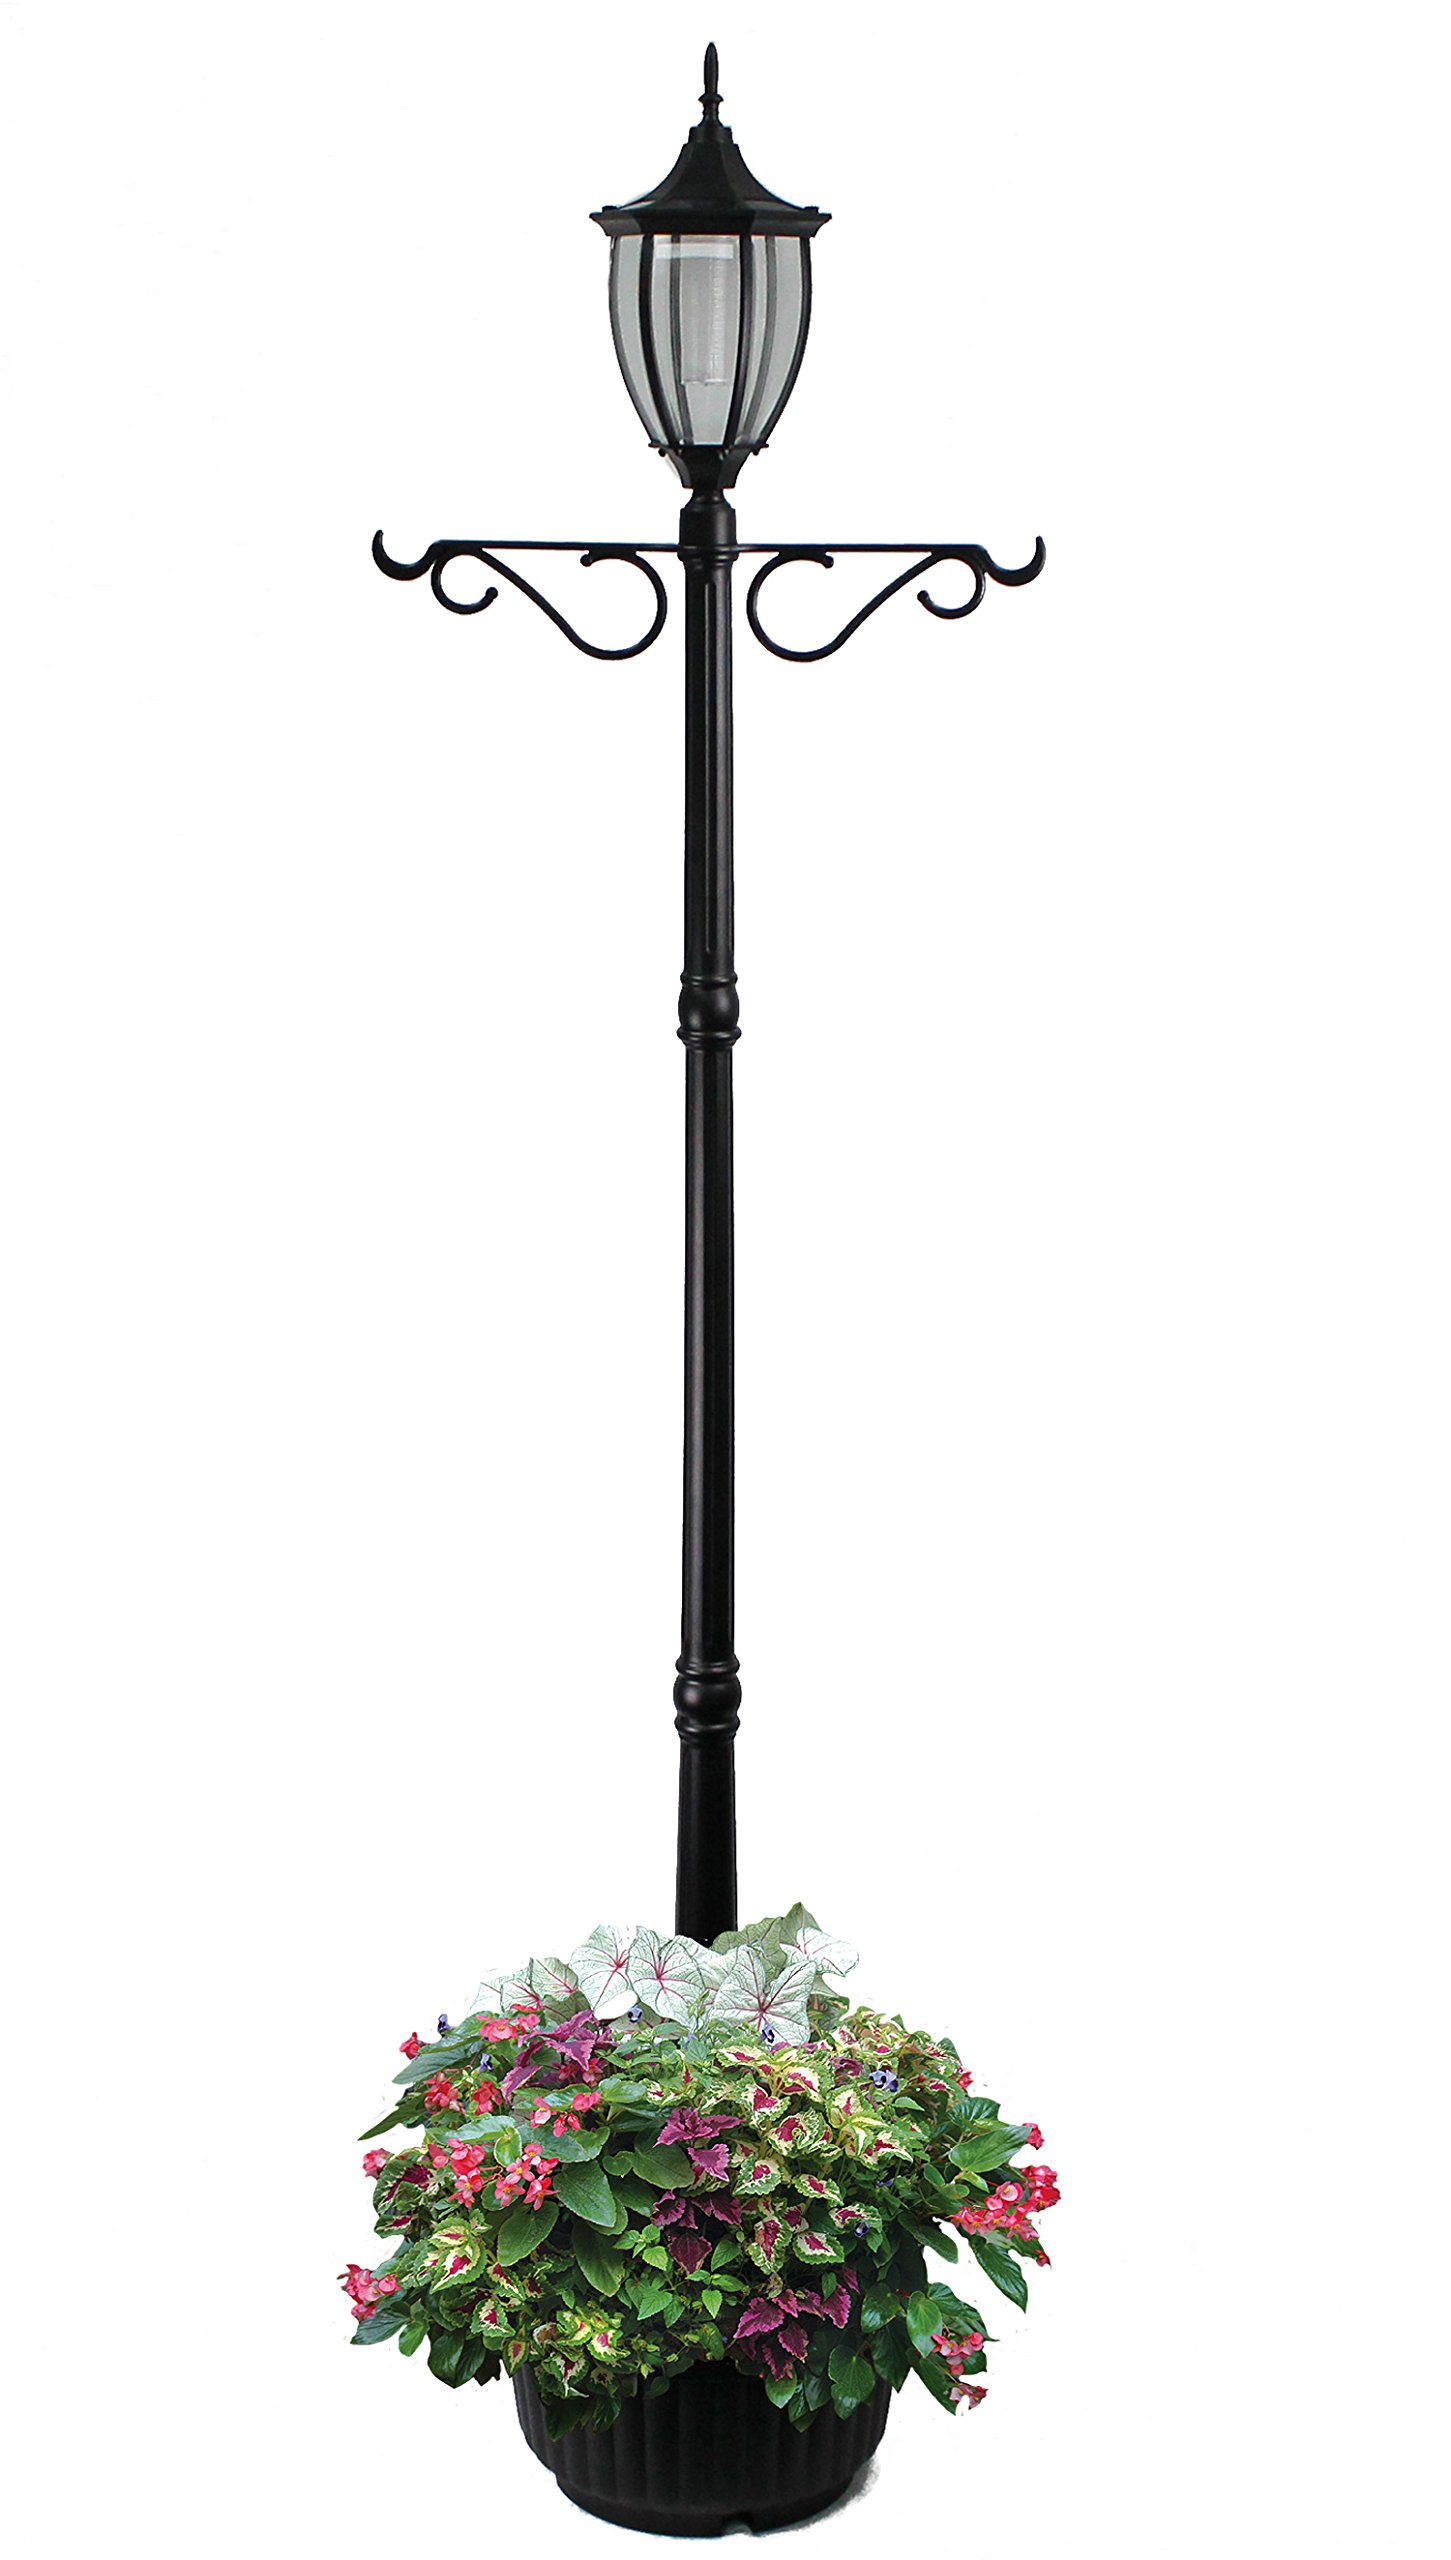 EdenBranch 312066 Sun-Ray Crest Mont Solar Lamp Post and Planter with Hanger, Black, Single Head